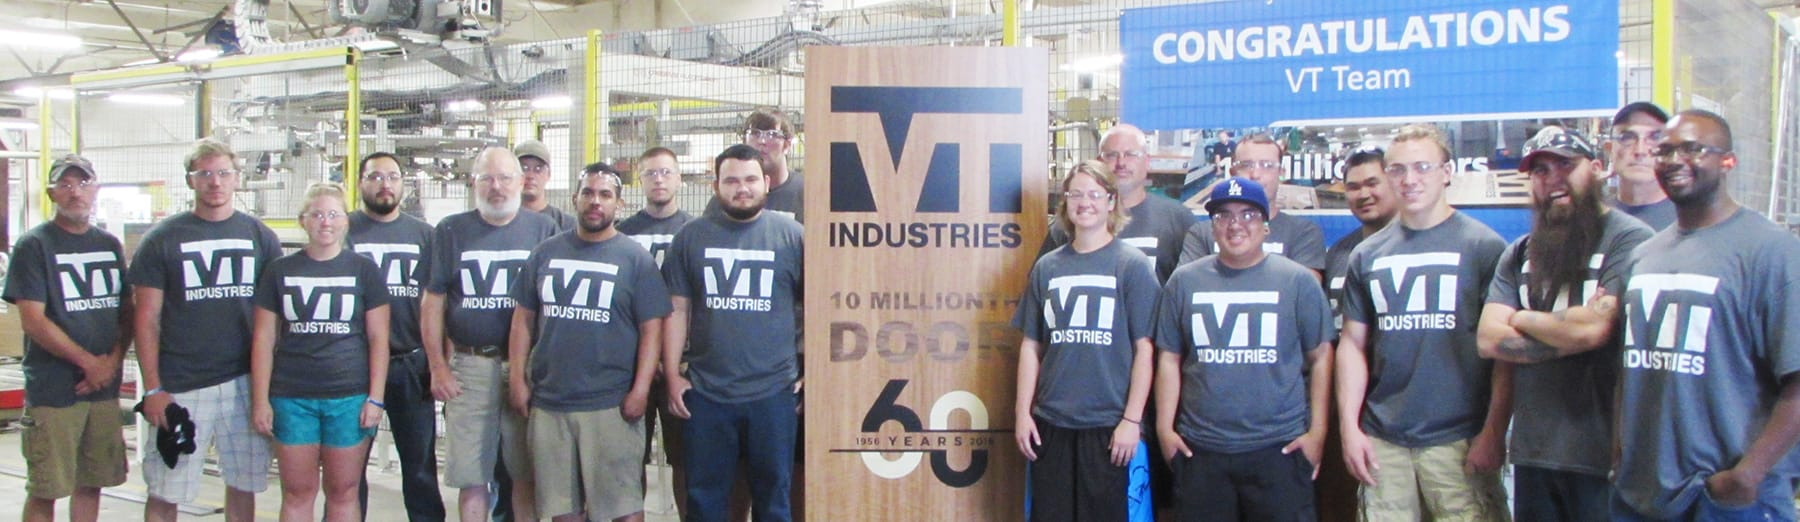 VT Industry Careers